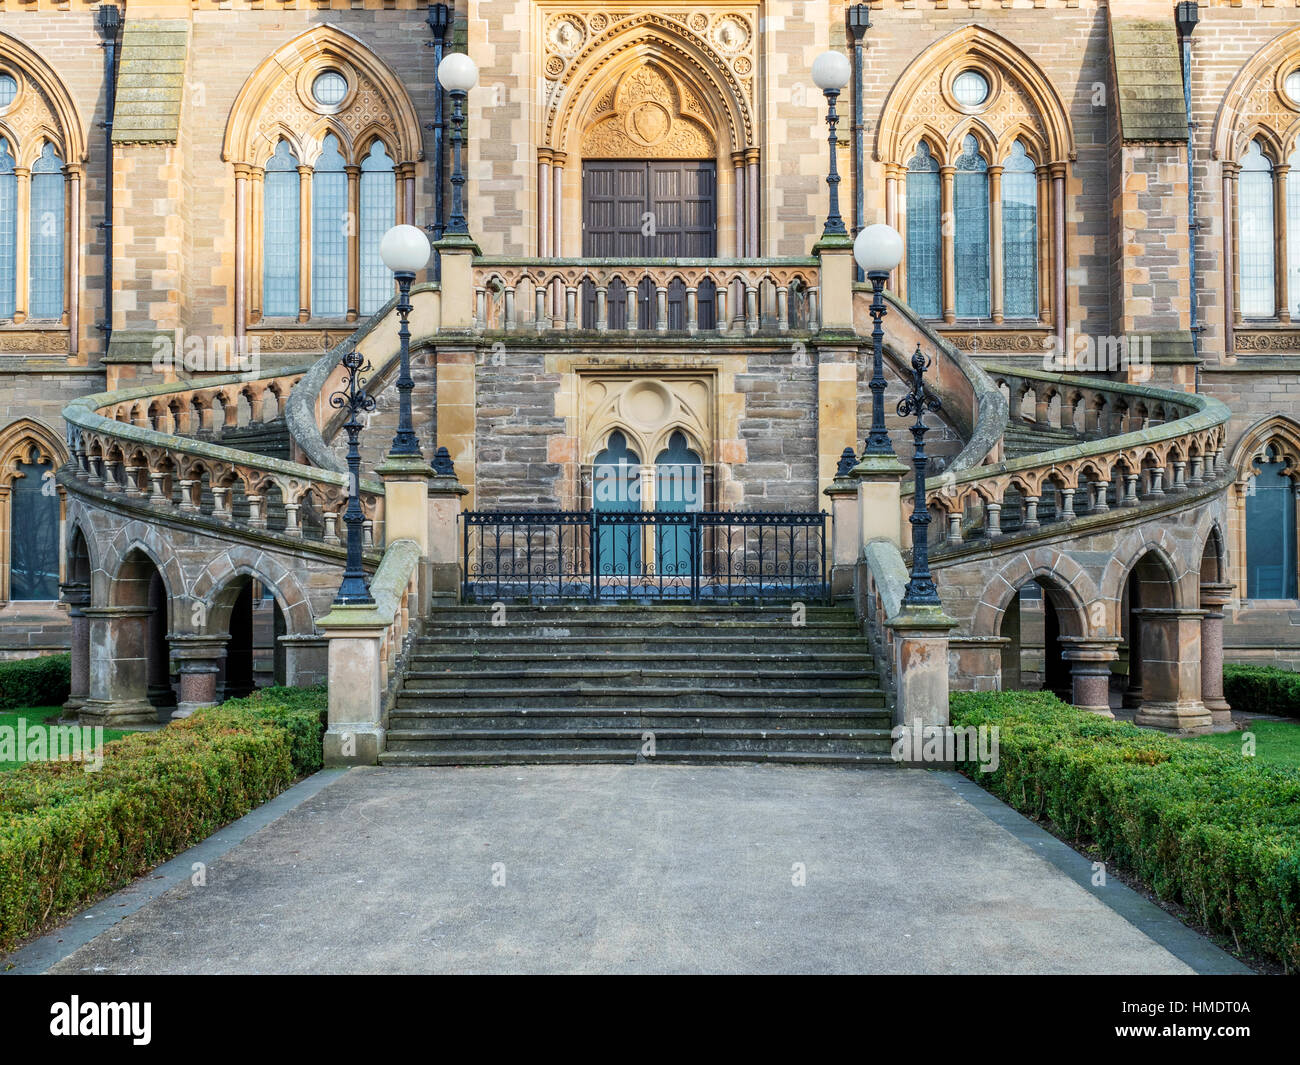 McManus Art Gallery and Museum in Dundee Scotland - Stock Image